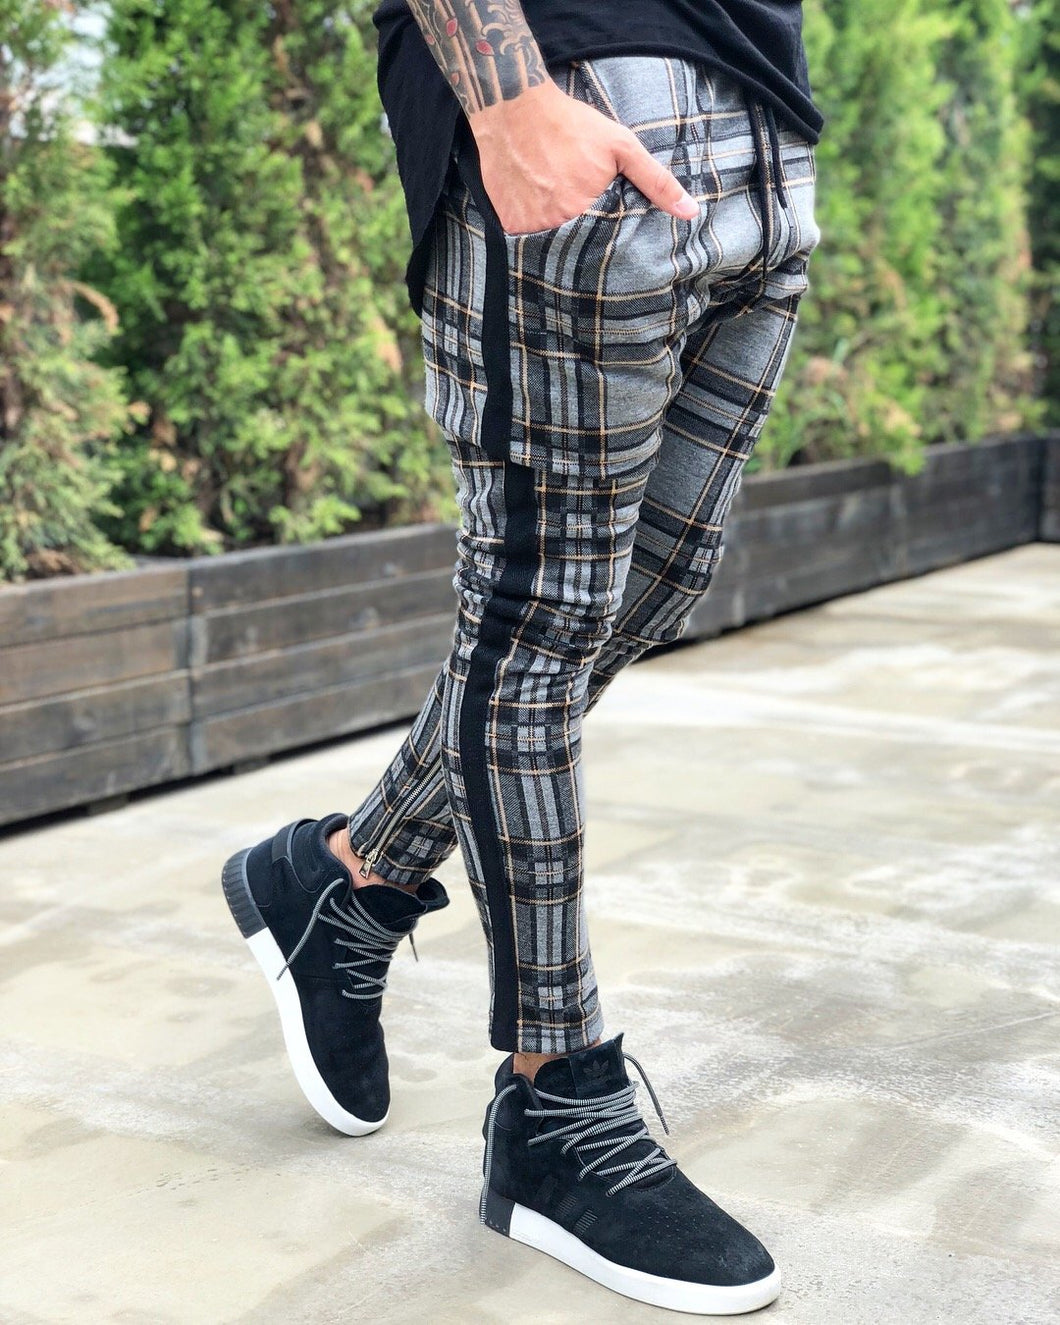 Gray Side Striped Checkered Jogger Pant B217 Streetwear Jogger Pants